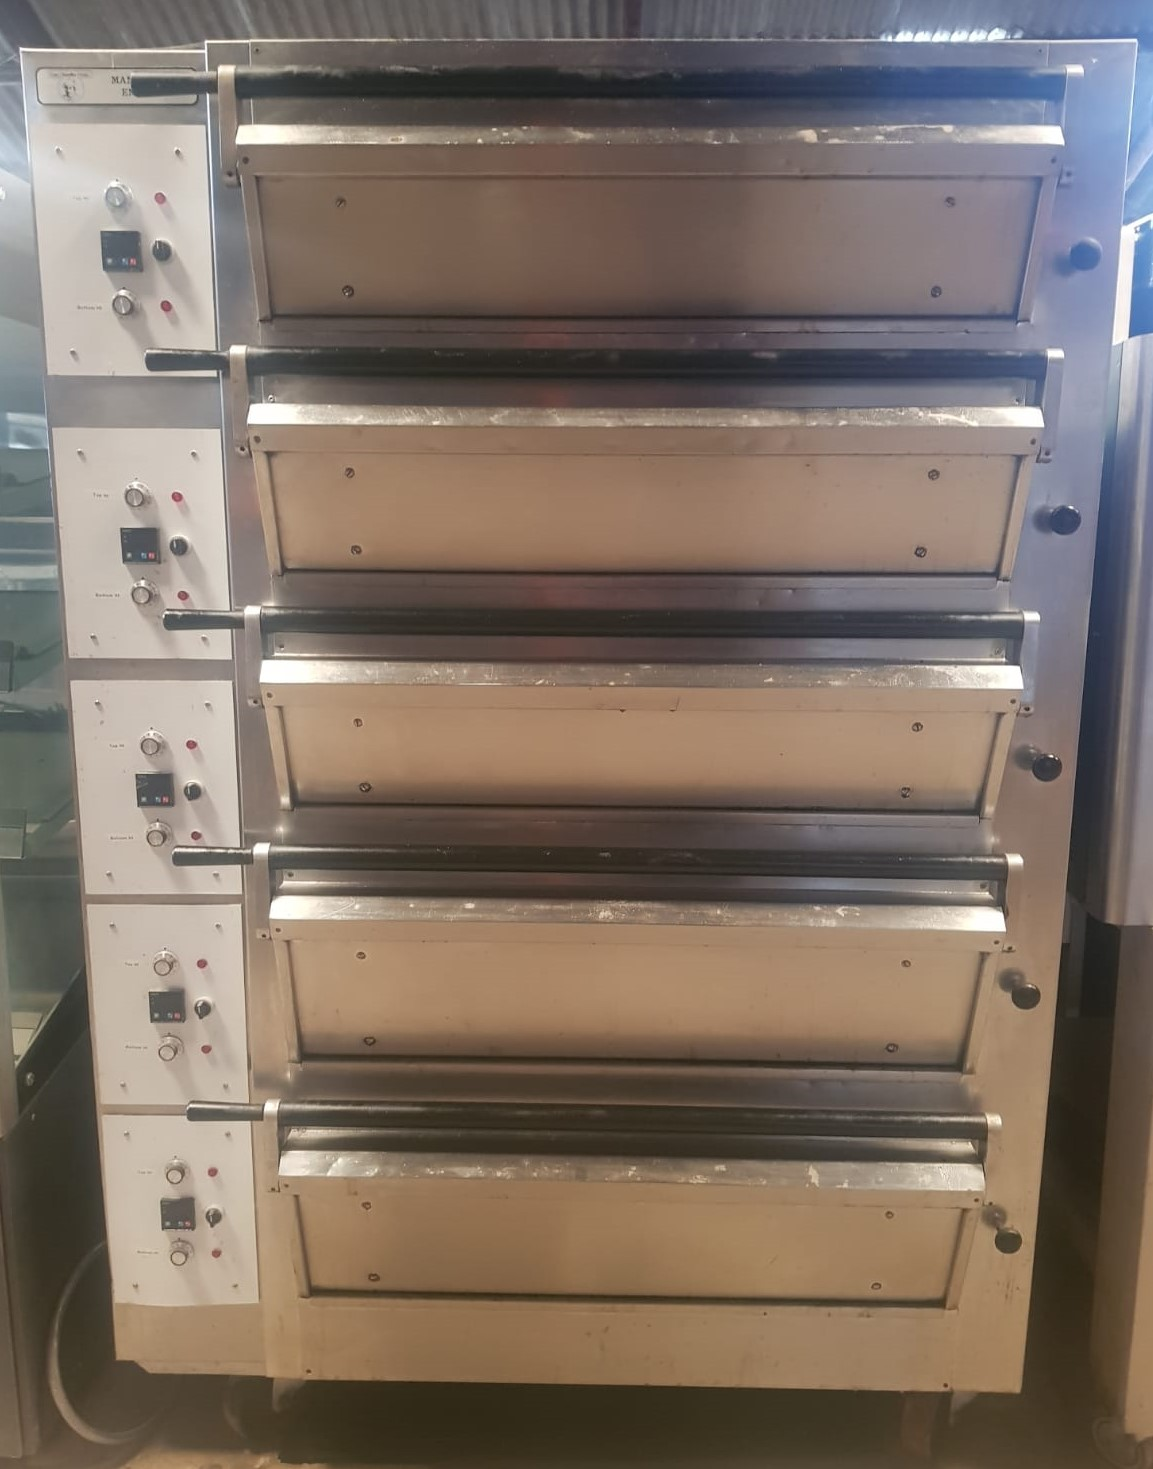 TOM CHANDLEY Compacta 5 Deck 10 Tray Bakers Oven